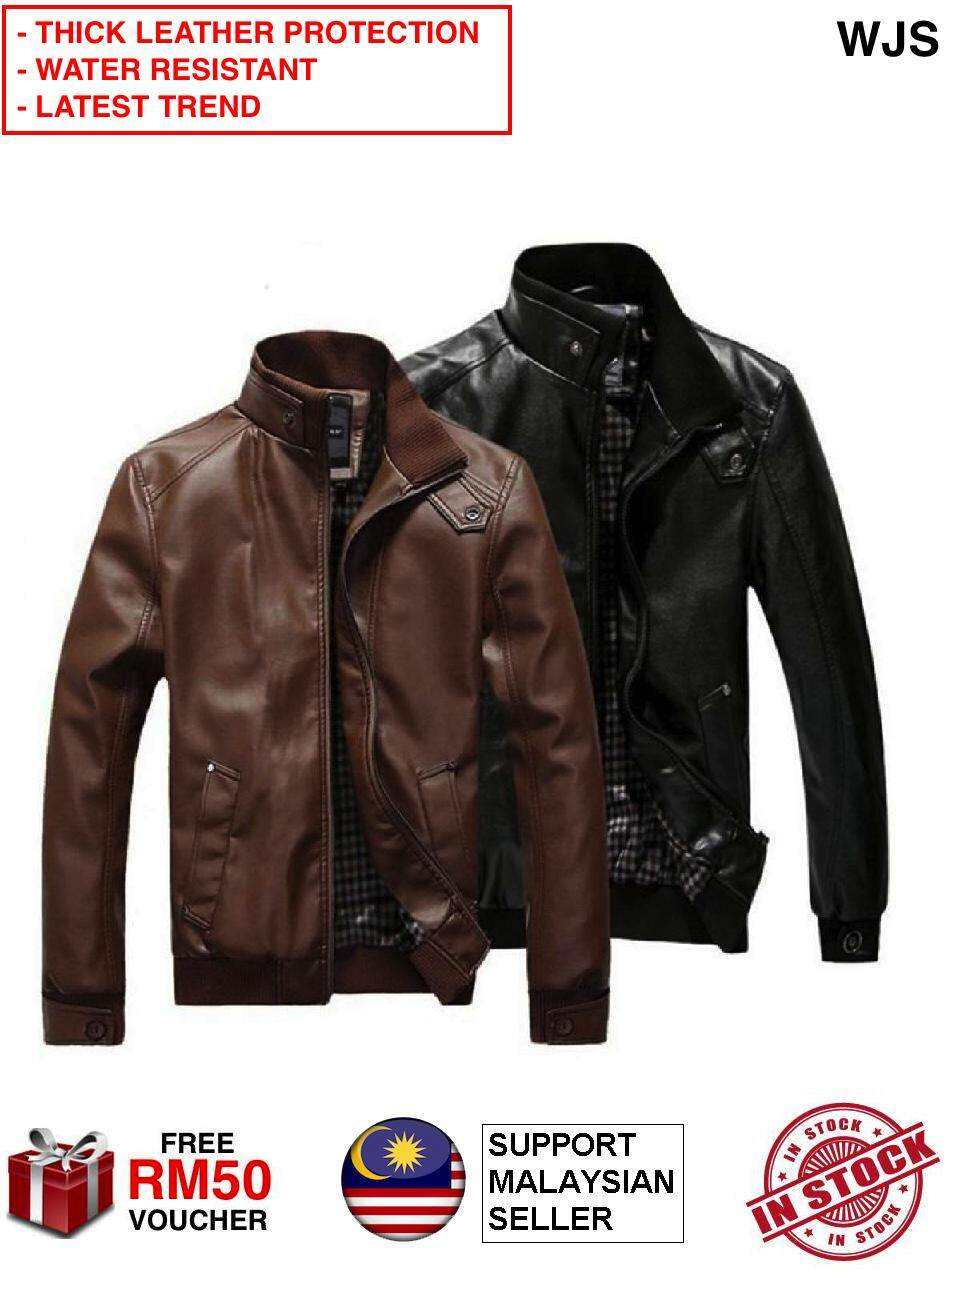 (THICK LEATHER PROTECTION) WJS Quality Fashion Man Leather Jacket Slimfit Motorcycle Leather Jacket Leather Coat Outwear for Mat Rempit Men Women Unisex BLACK BROWN MULTIPLE SIZES [FREE RM 50 VOUCHER]